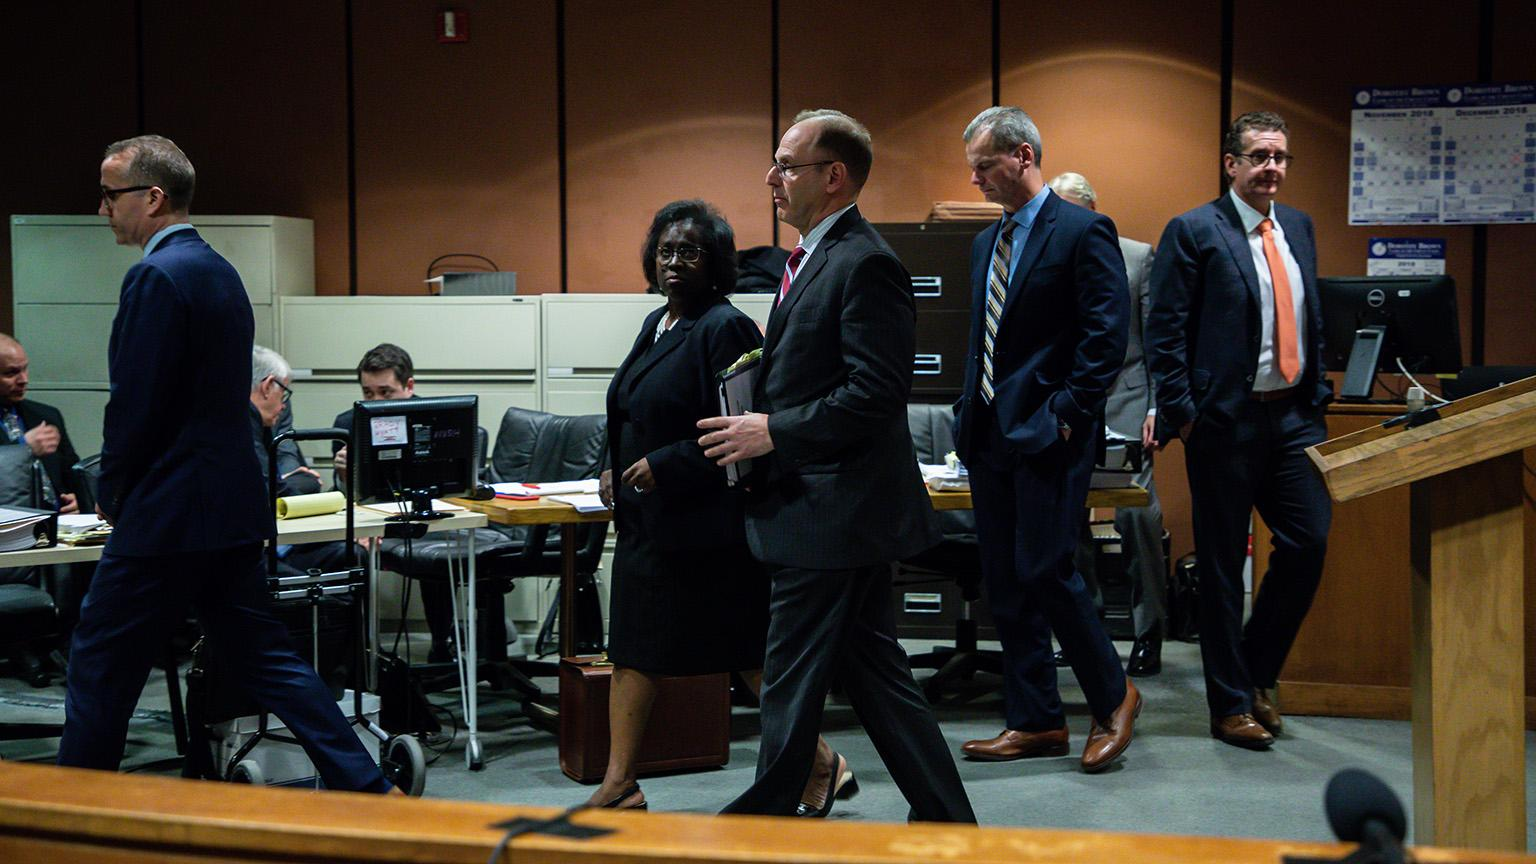 Prosecutors and attorneys confer during the trial of Chicago police Officer Thomas Gaffney, former Detective David March and ex-Officer Joseph Walsh with Judge Domenica A. Stephenson on Thursday, Nov. 29, 2018. (Zbigniew Bzdak / Chicago Tribune / Pool)